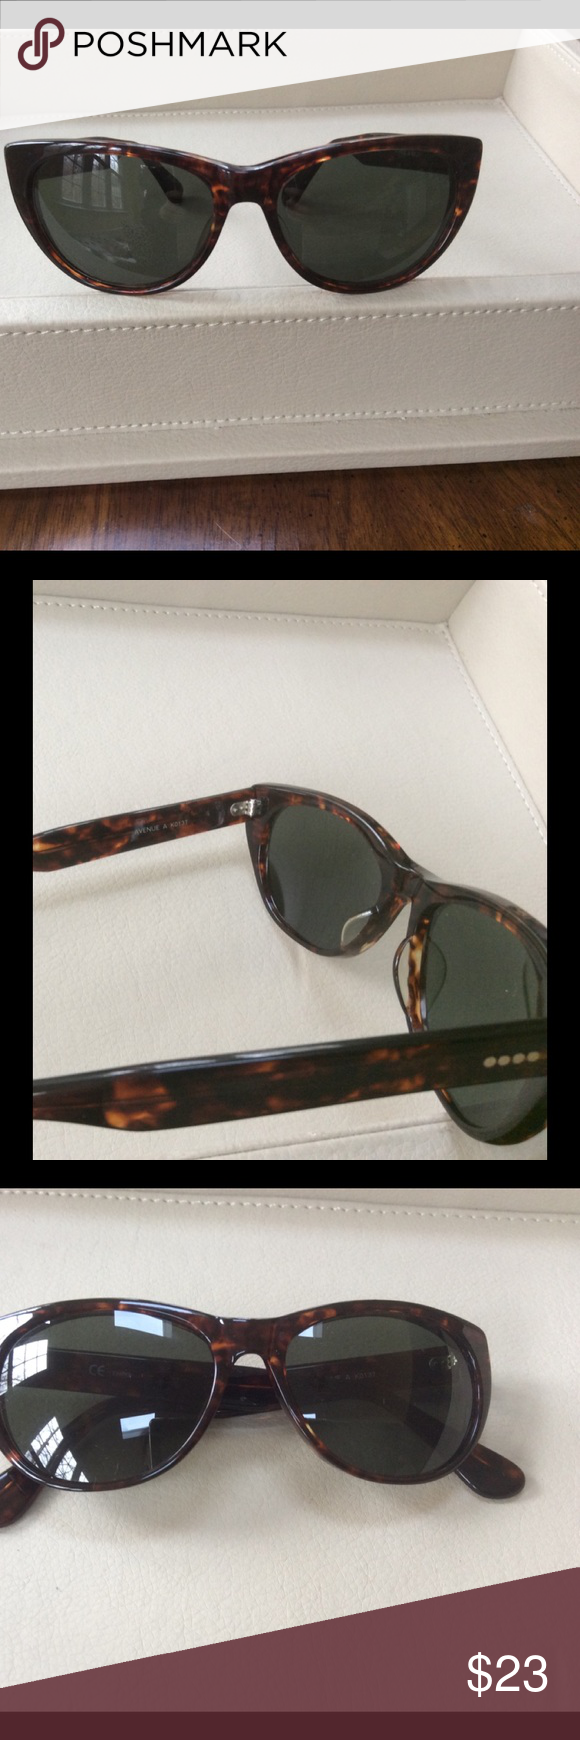 f8a43c3b7814 Timeless DKNY Donna Karan New York sunglasses Classic DKNY tortoise shell  honey color sunglasses in excellent used condition. Model Avenue A K0137.